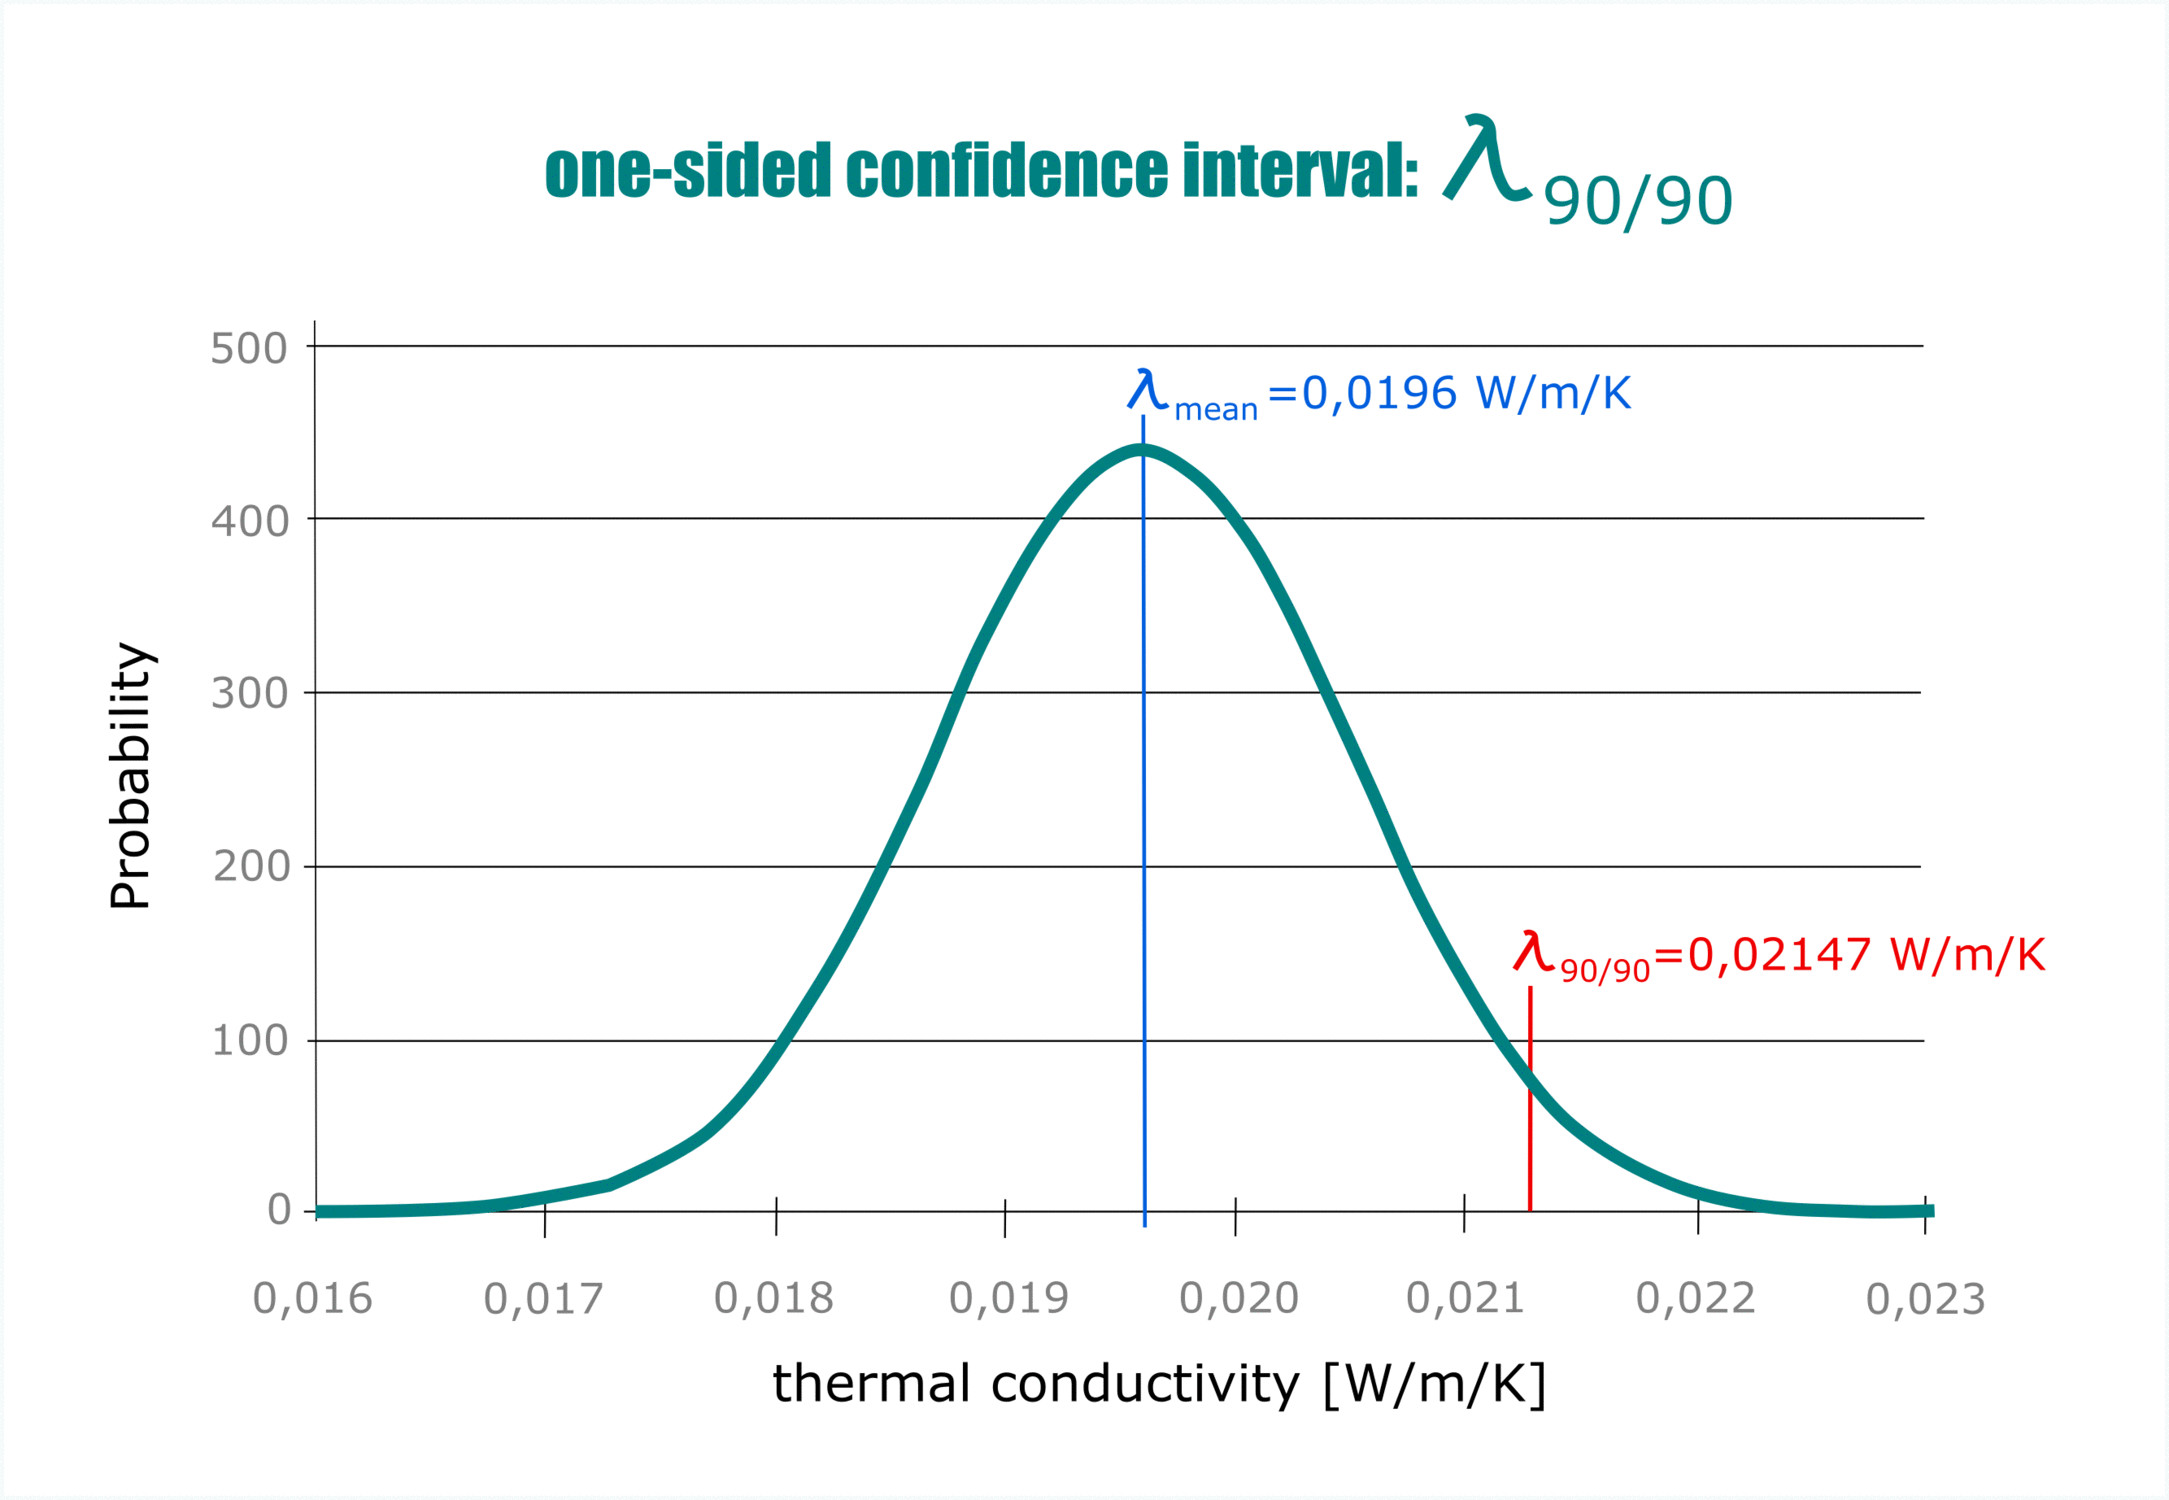 The picture shows a typical bell curve for the distribution of thermal conductivities and the meaning of Lambda 90/90.